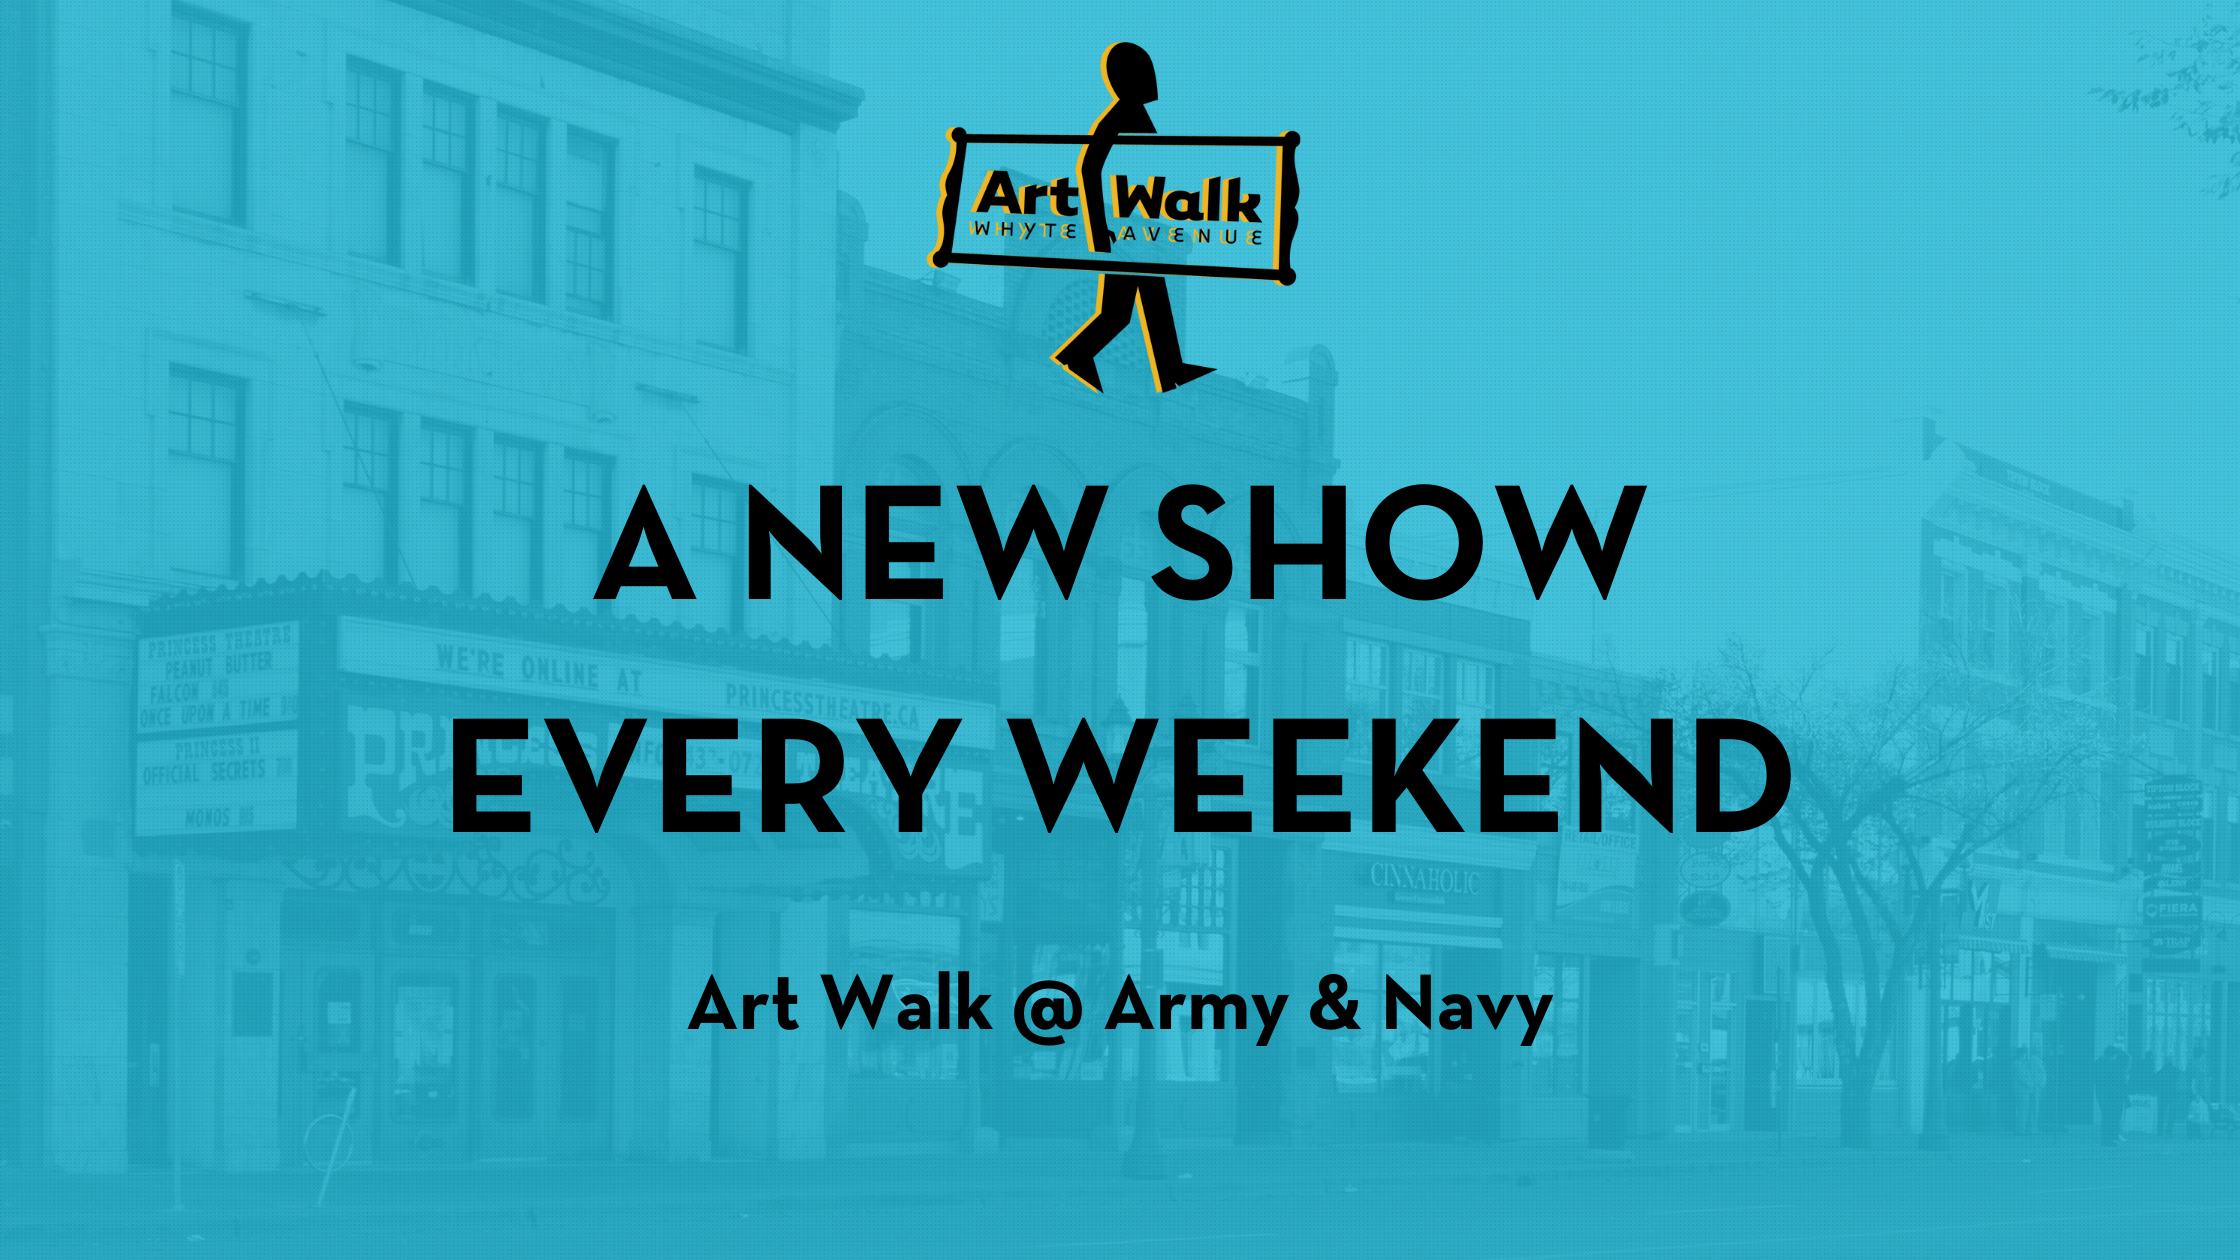 """Art Walk logo of person carrying canvas, text reads """"A New Show Every Weekend: Art Walk at Army & Navy"""